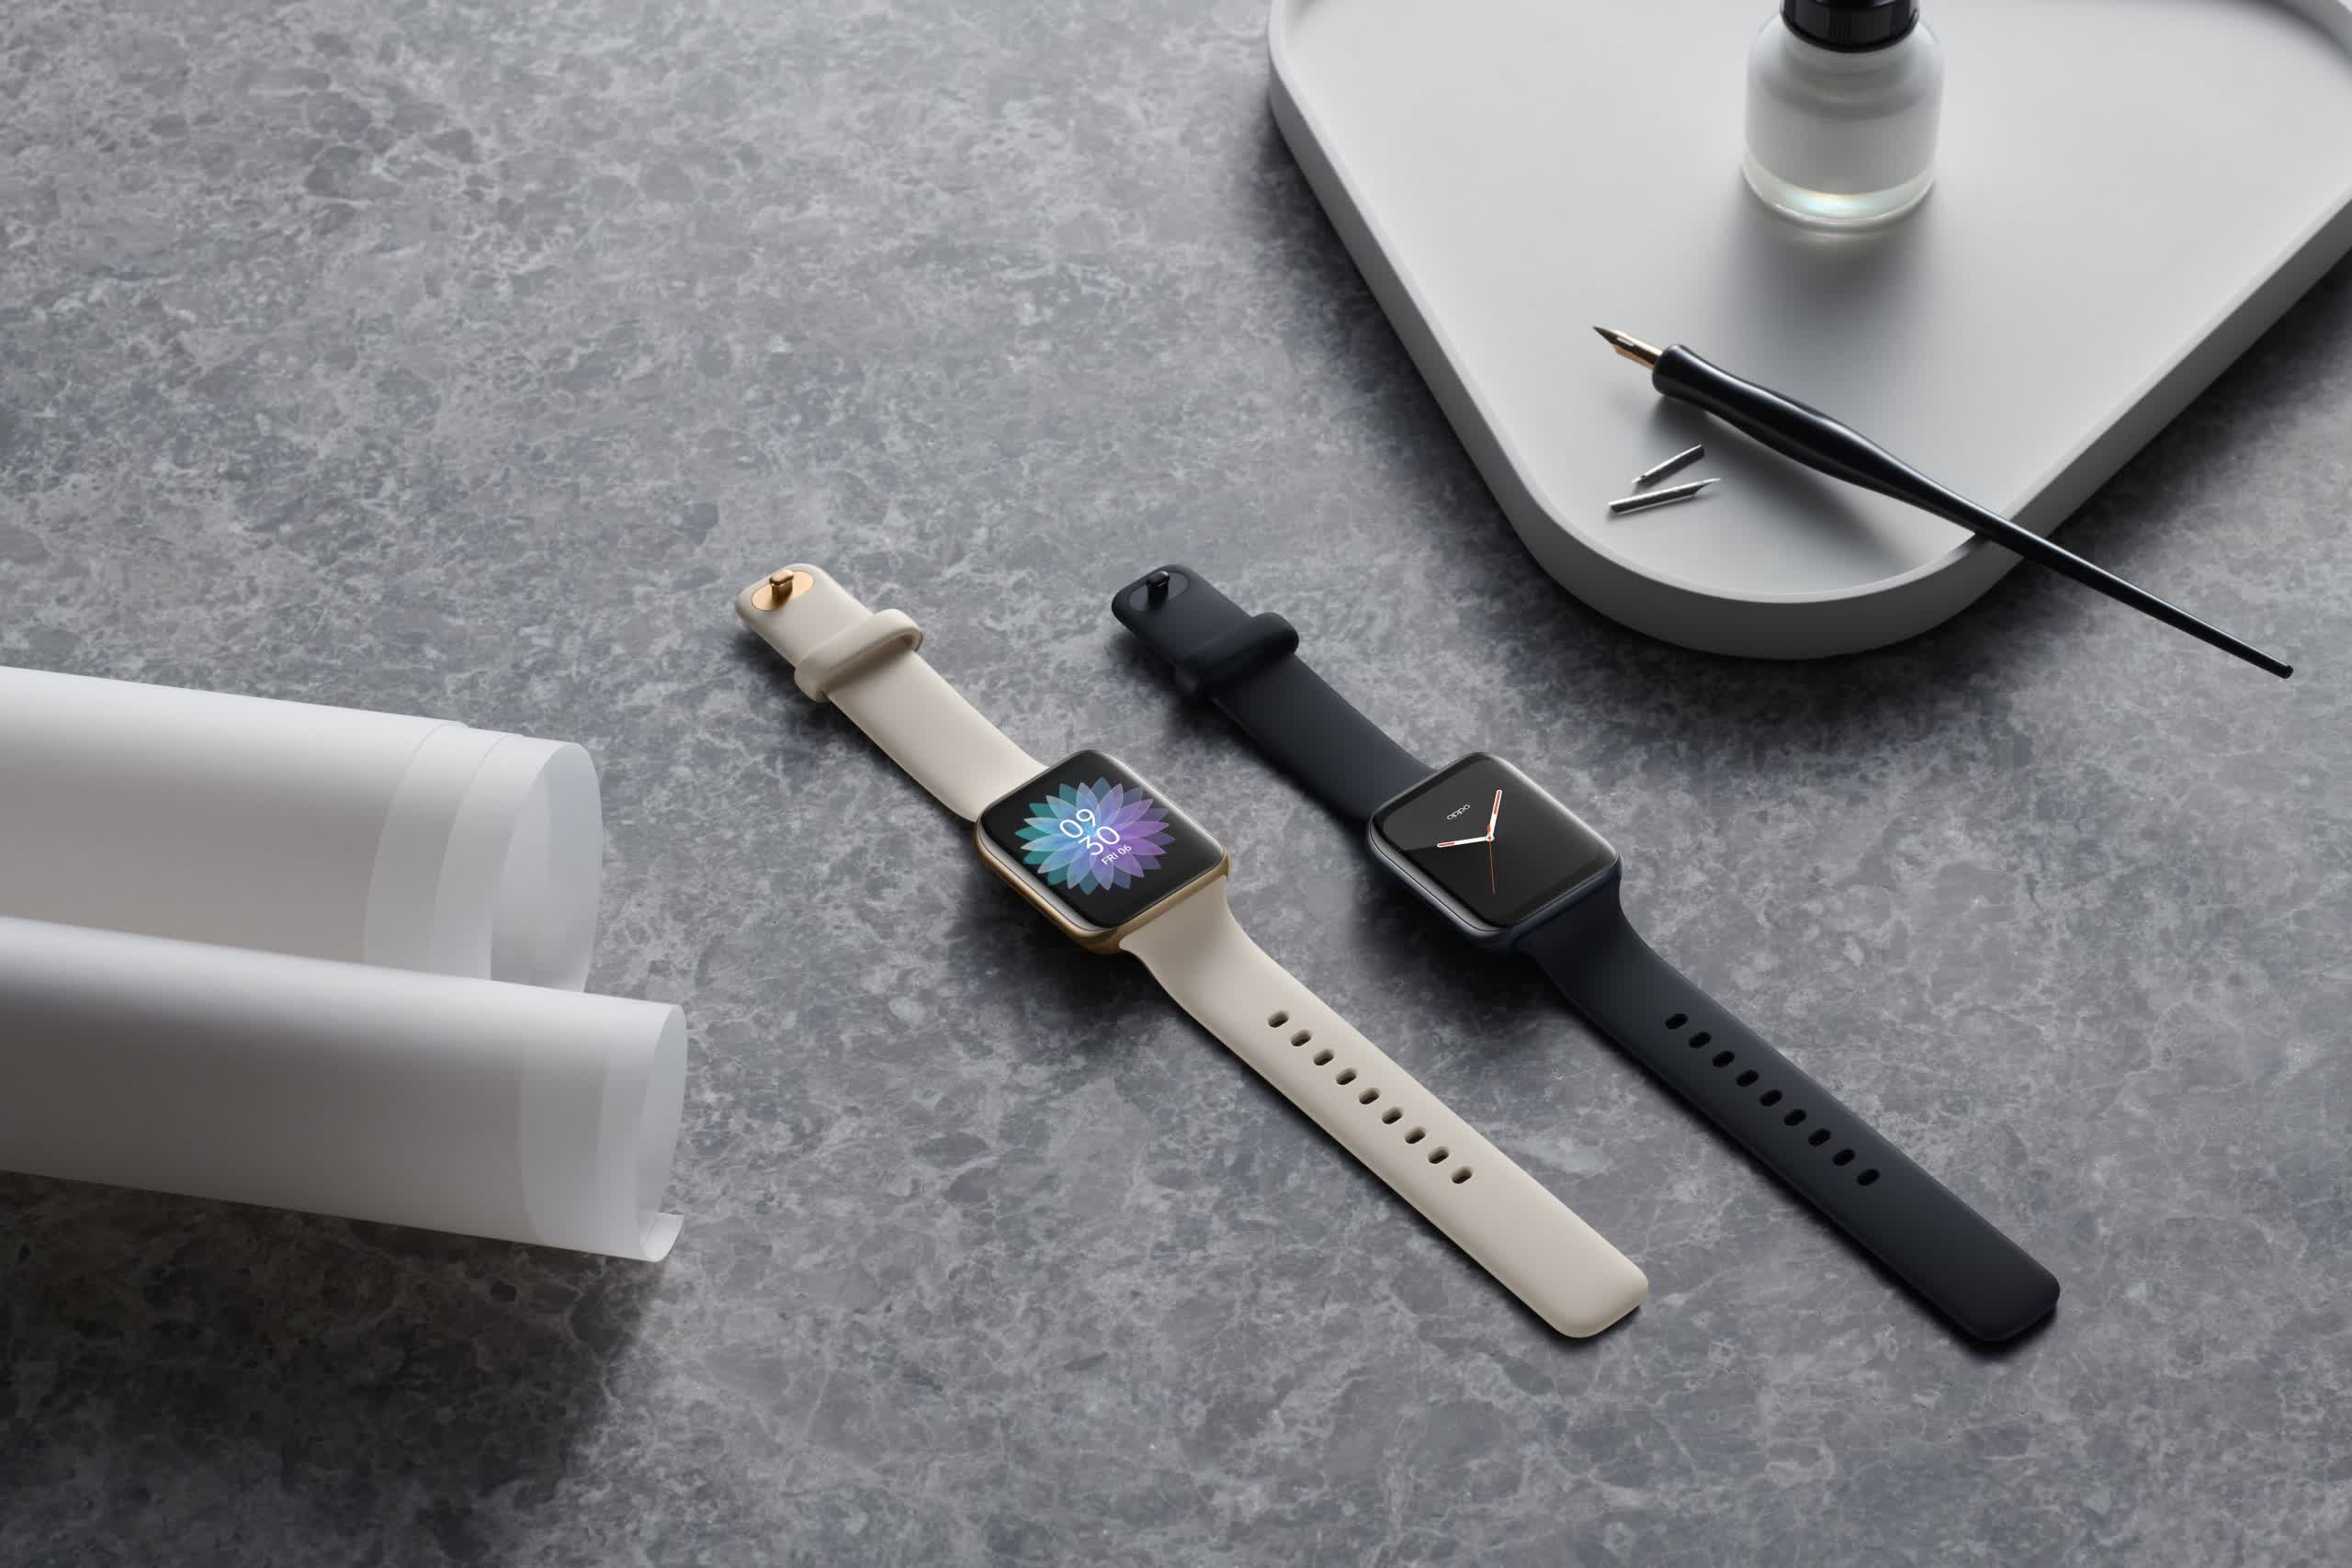 Oppo is readying the first Wear OS smartwatch with ECG functionality